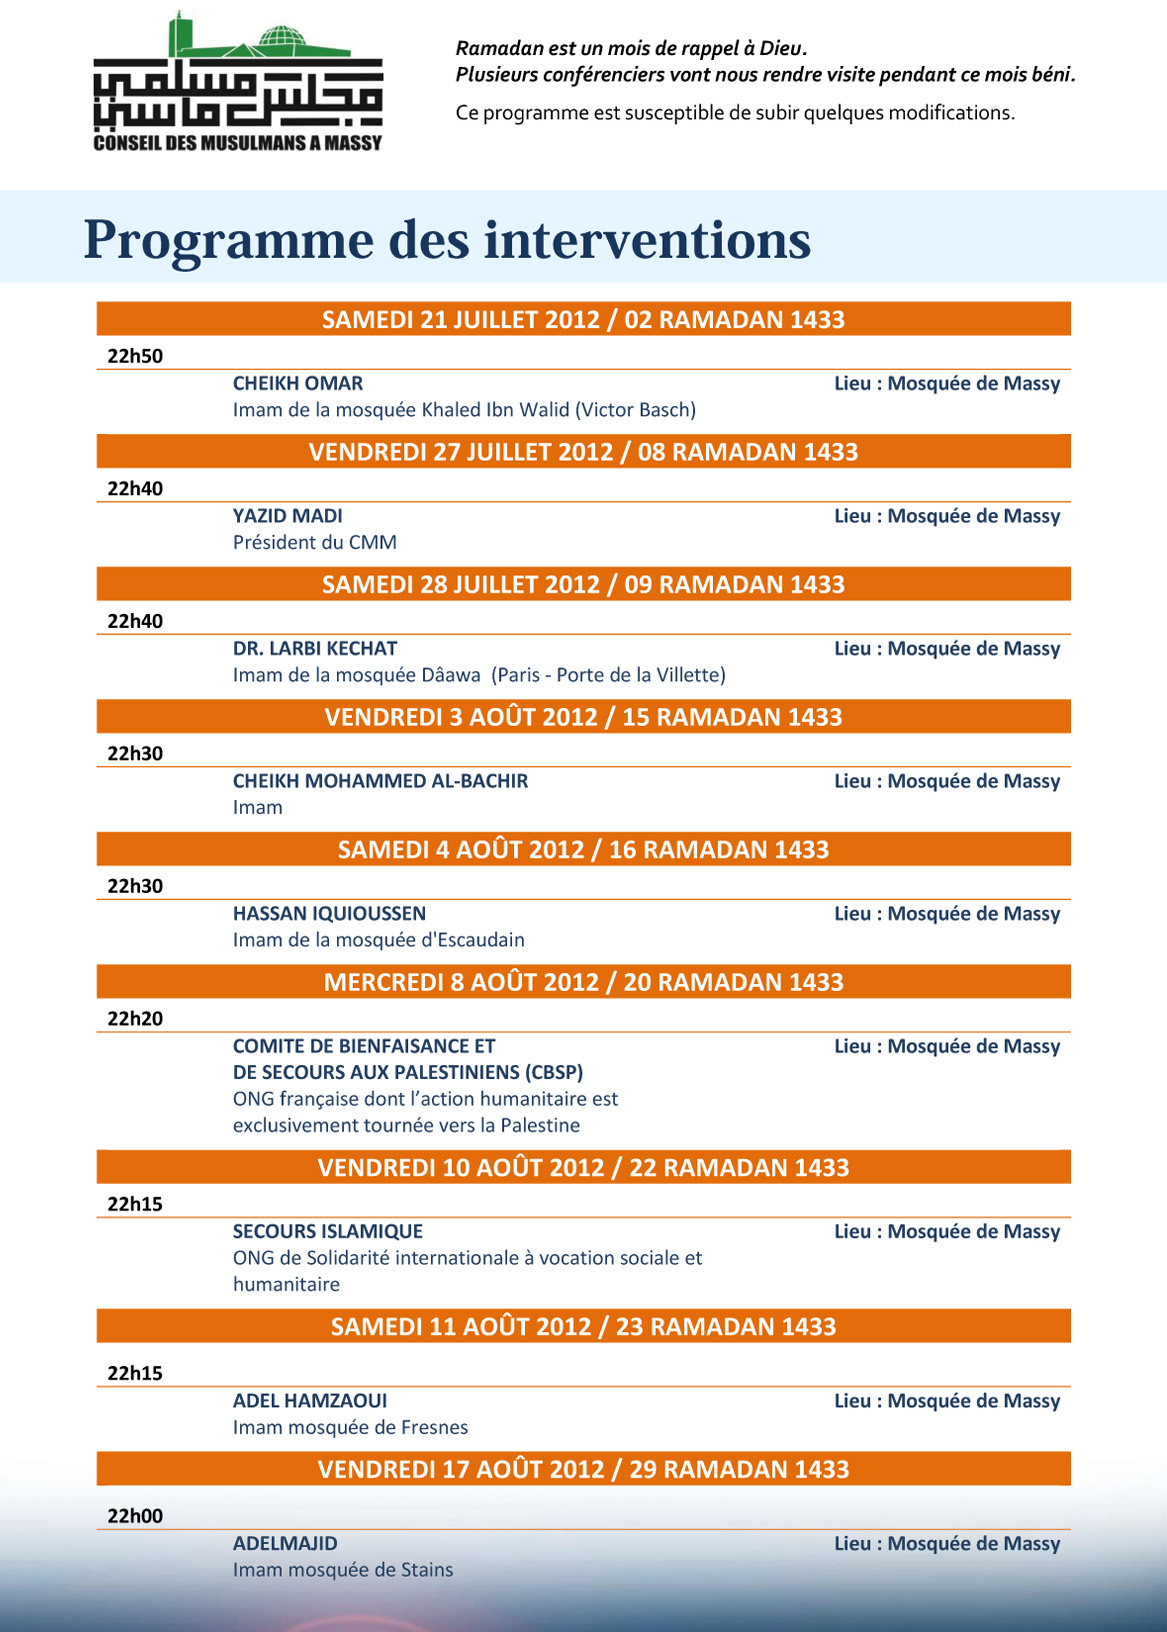 Planning des interventions pendant le ramadan